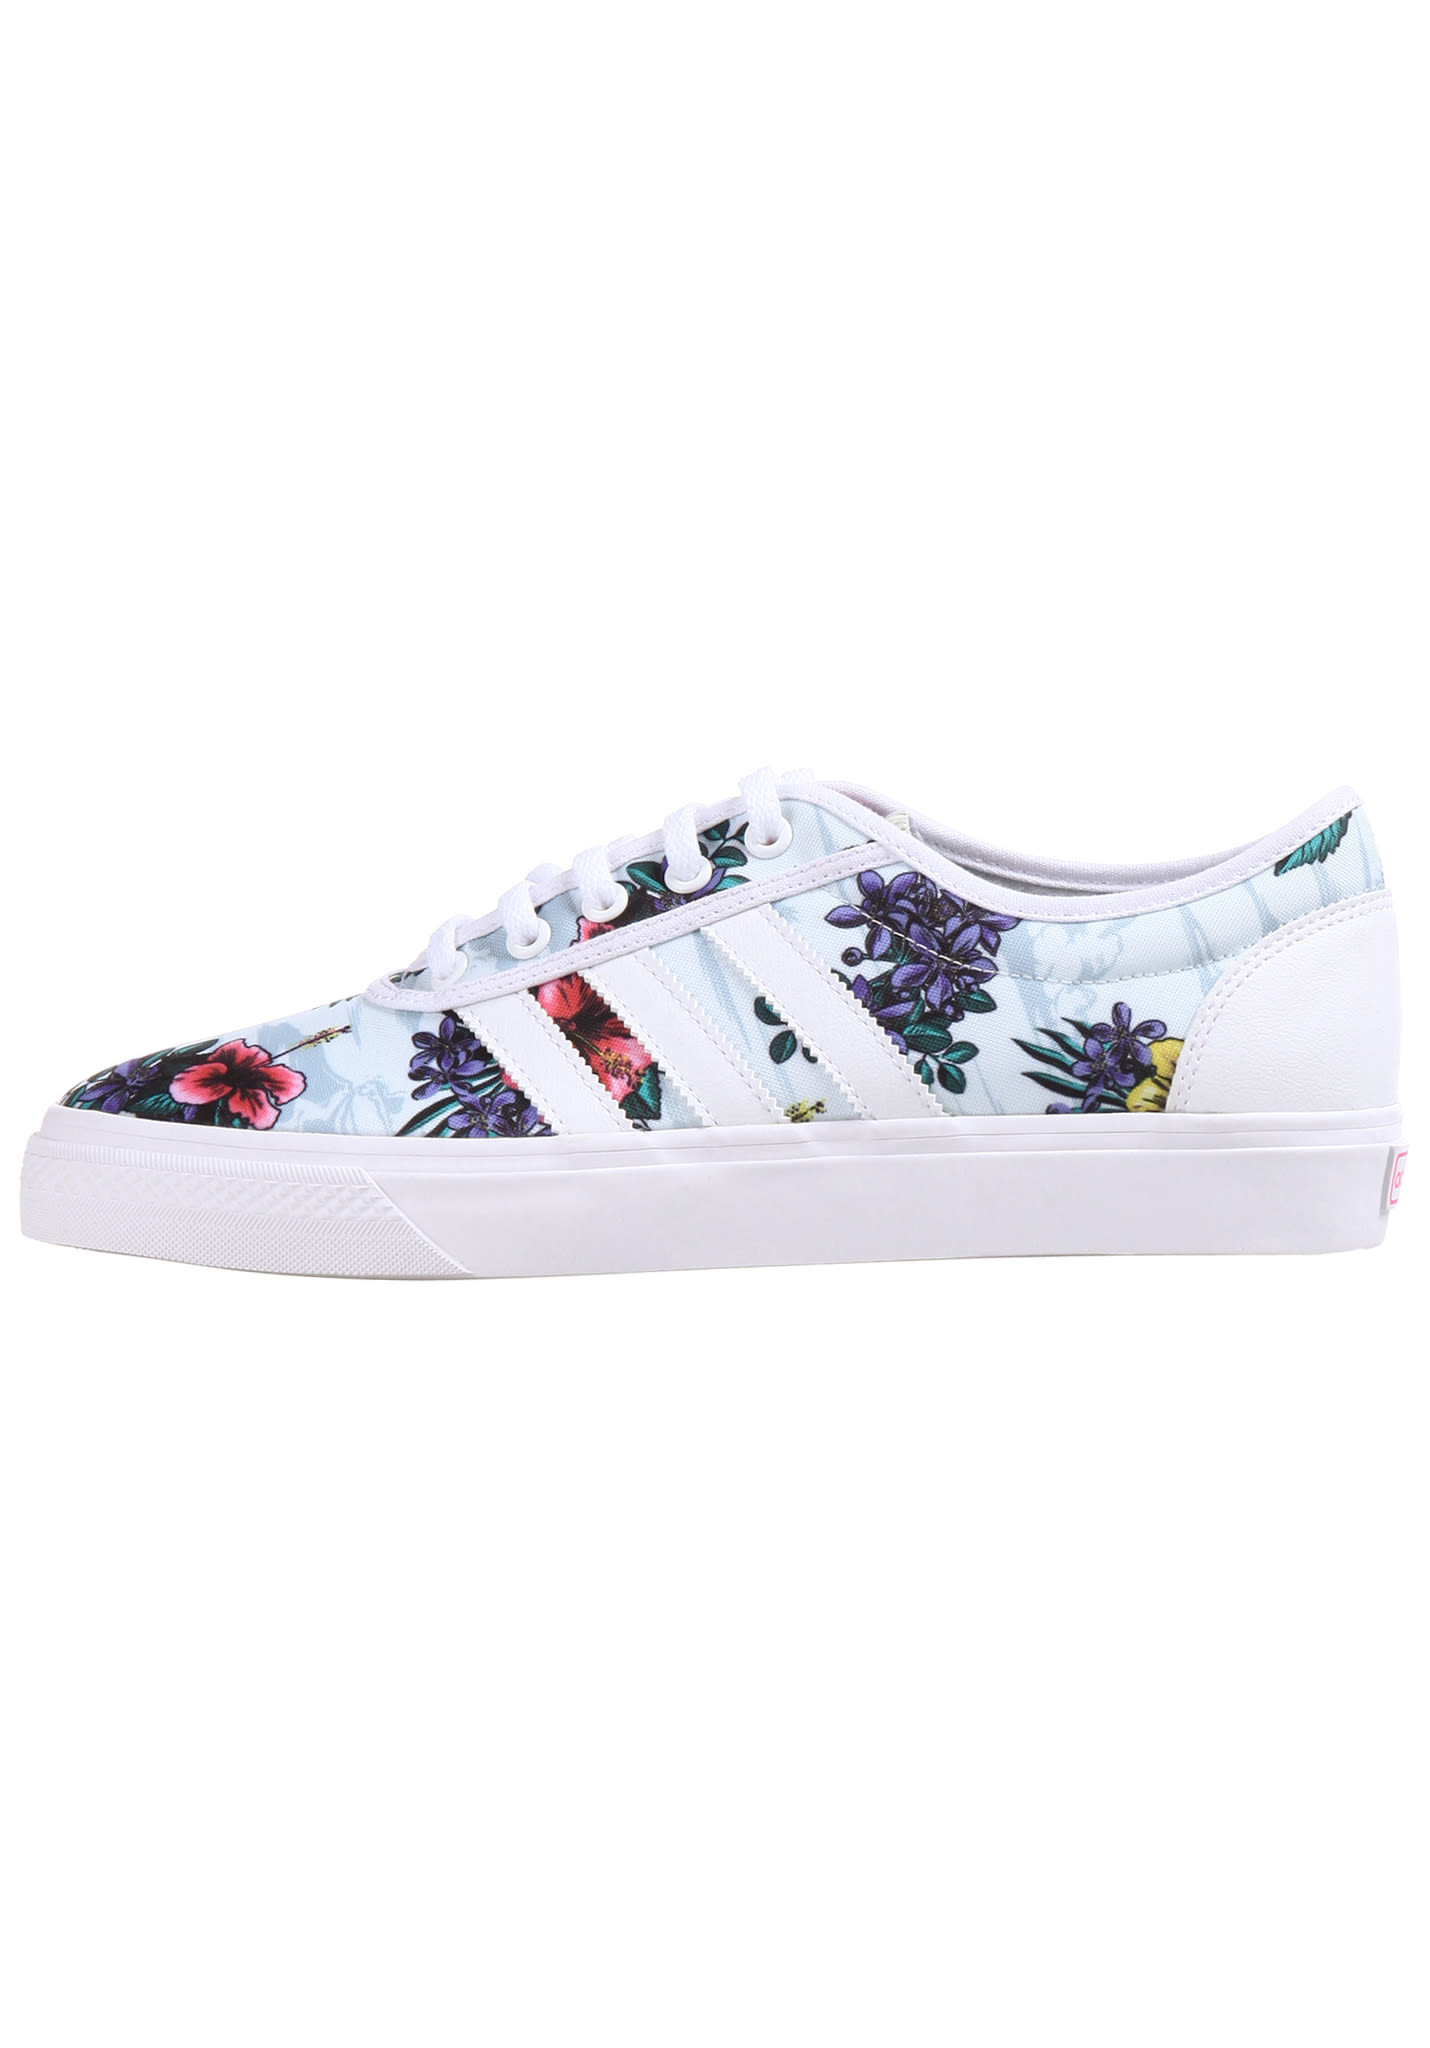 a9b6977f16ab Adidas Skateboarding Adi-Ease - Sneakers - Multicolor - Planet Sports